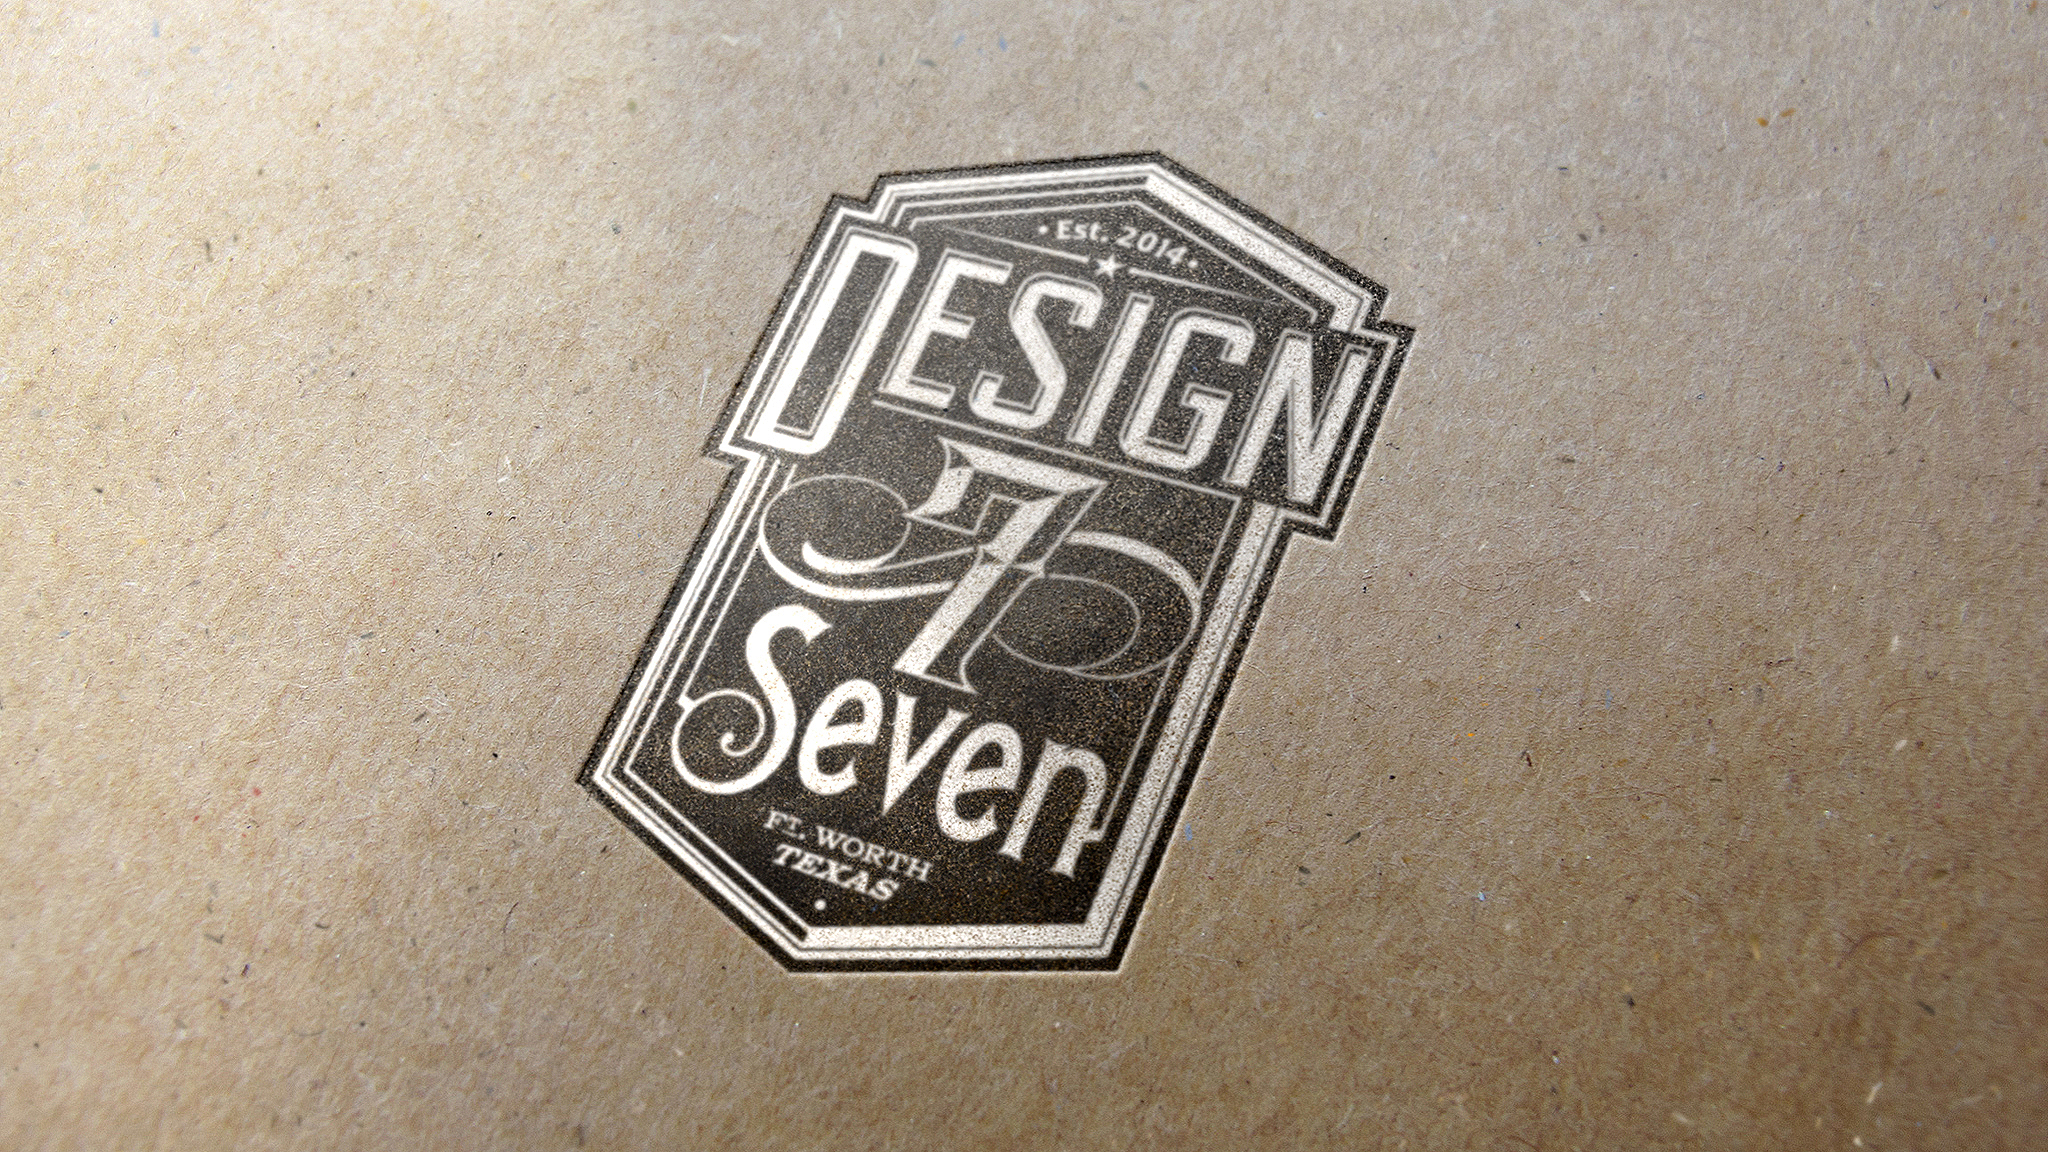 7:00PMSponsored by Design 7 Seven. Live music, entertainment, raffles -